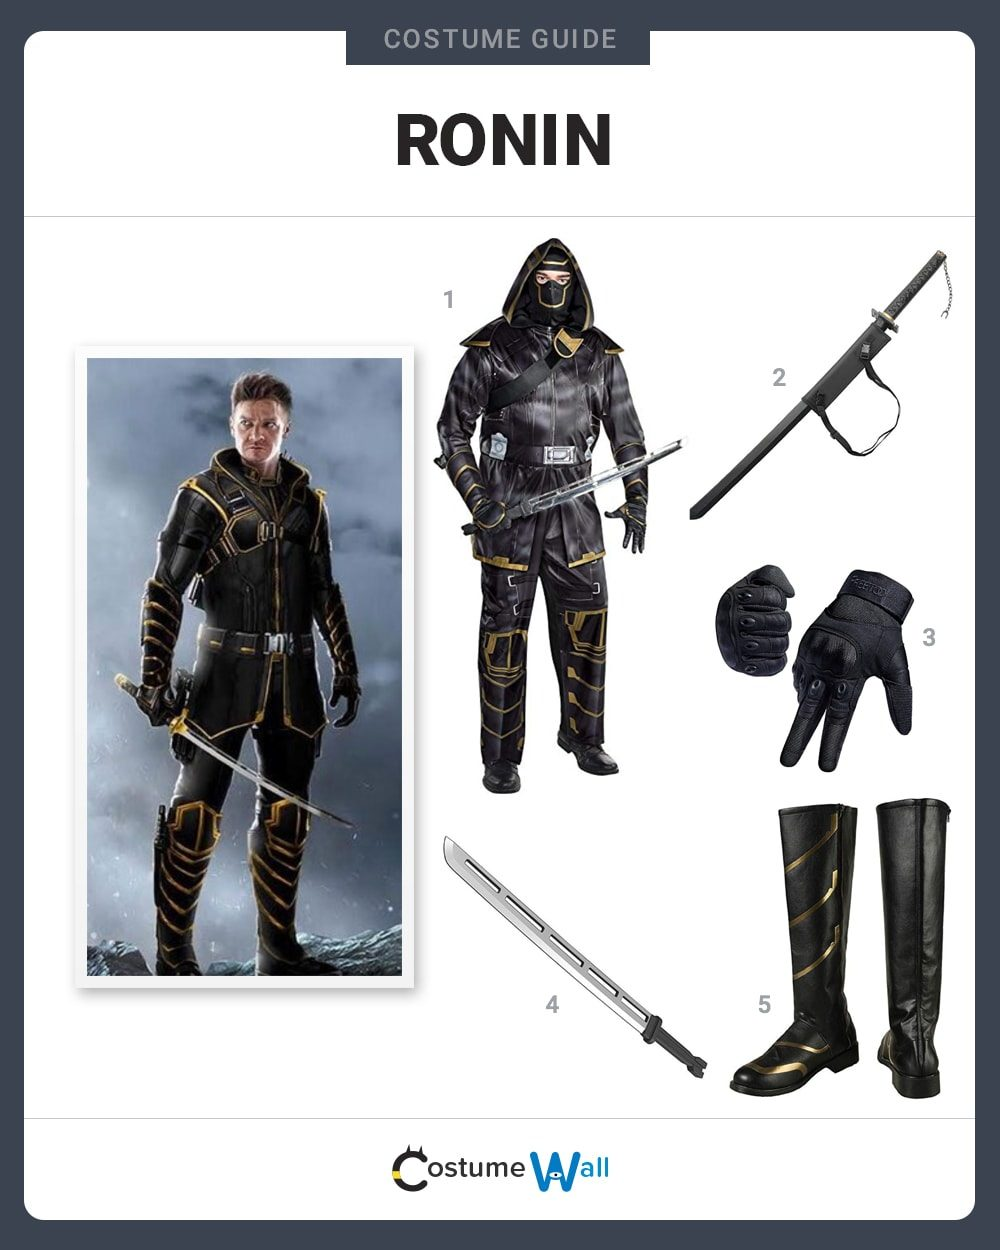 Ronin Costume Guide